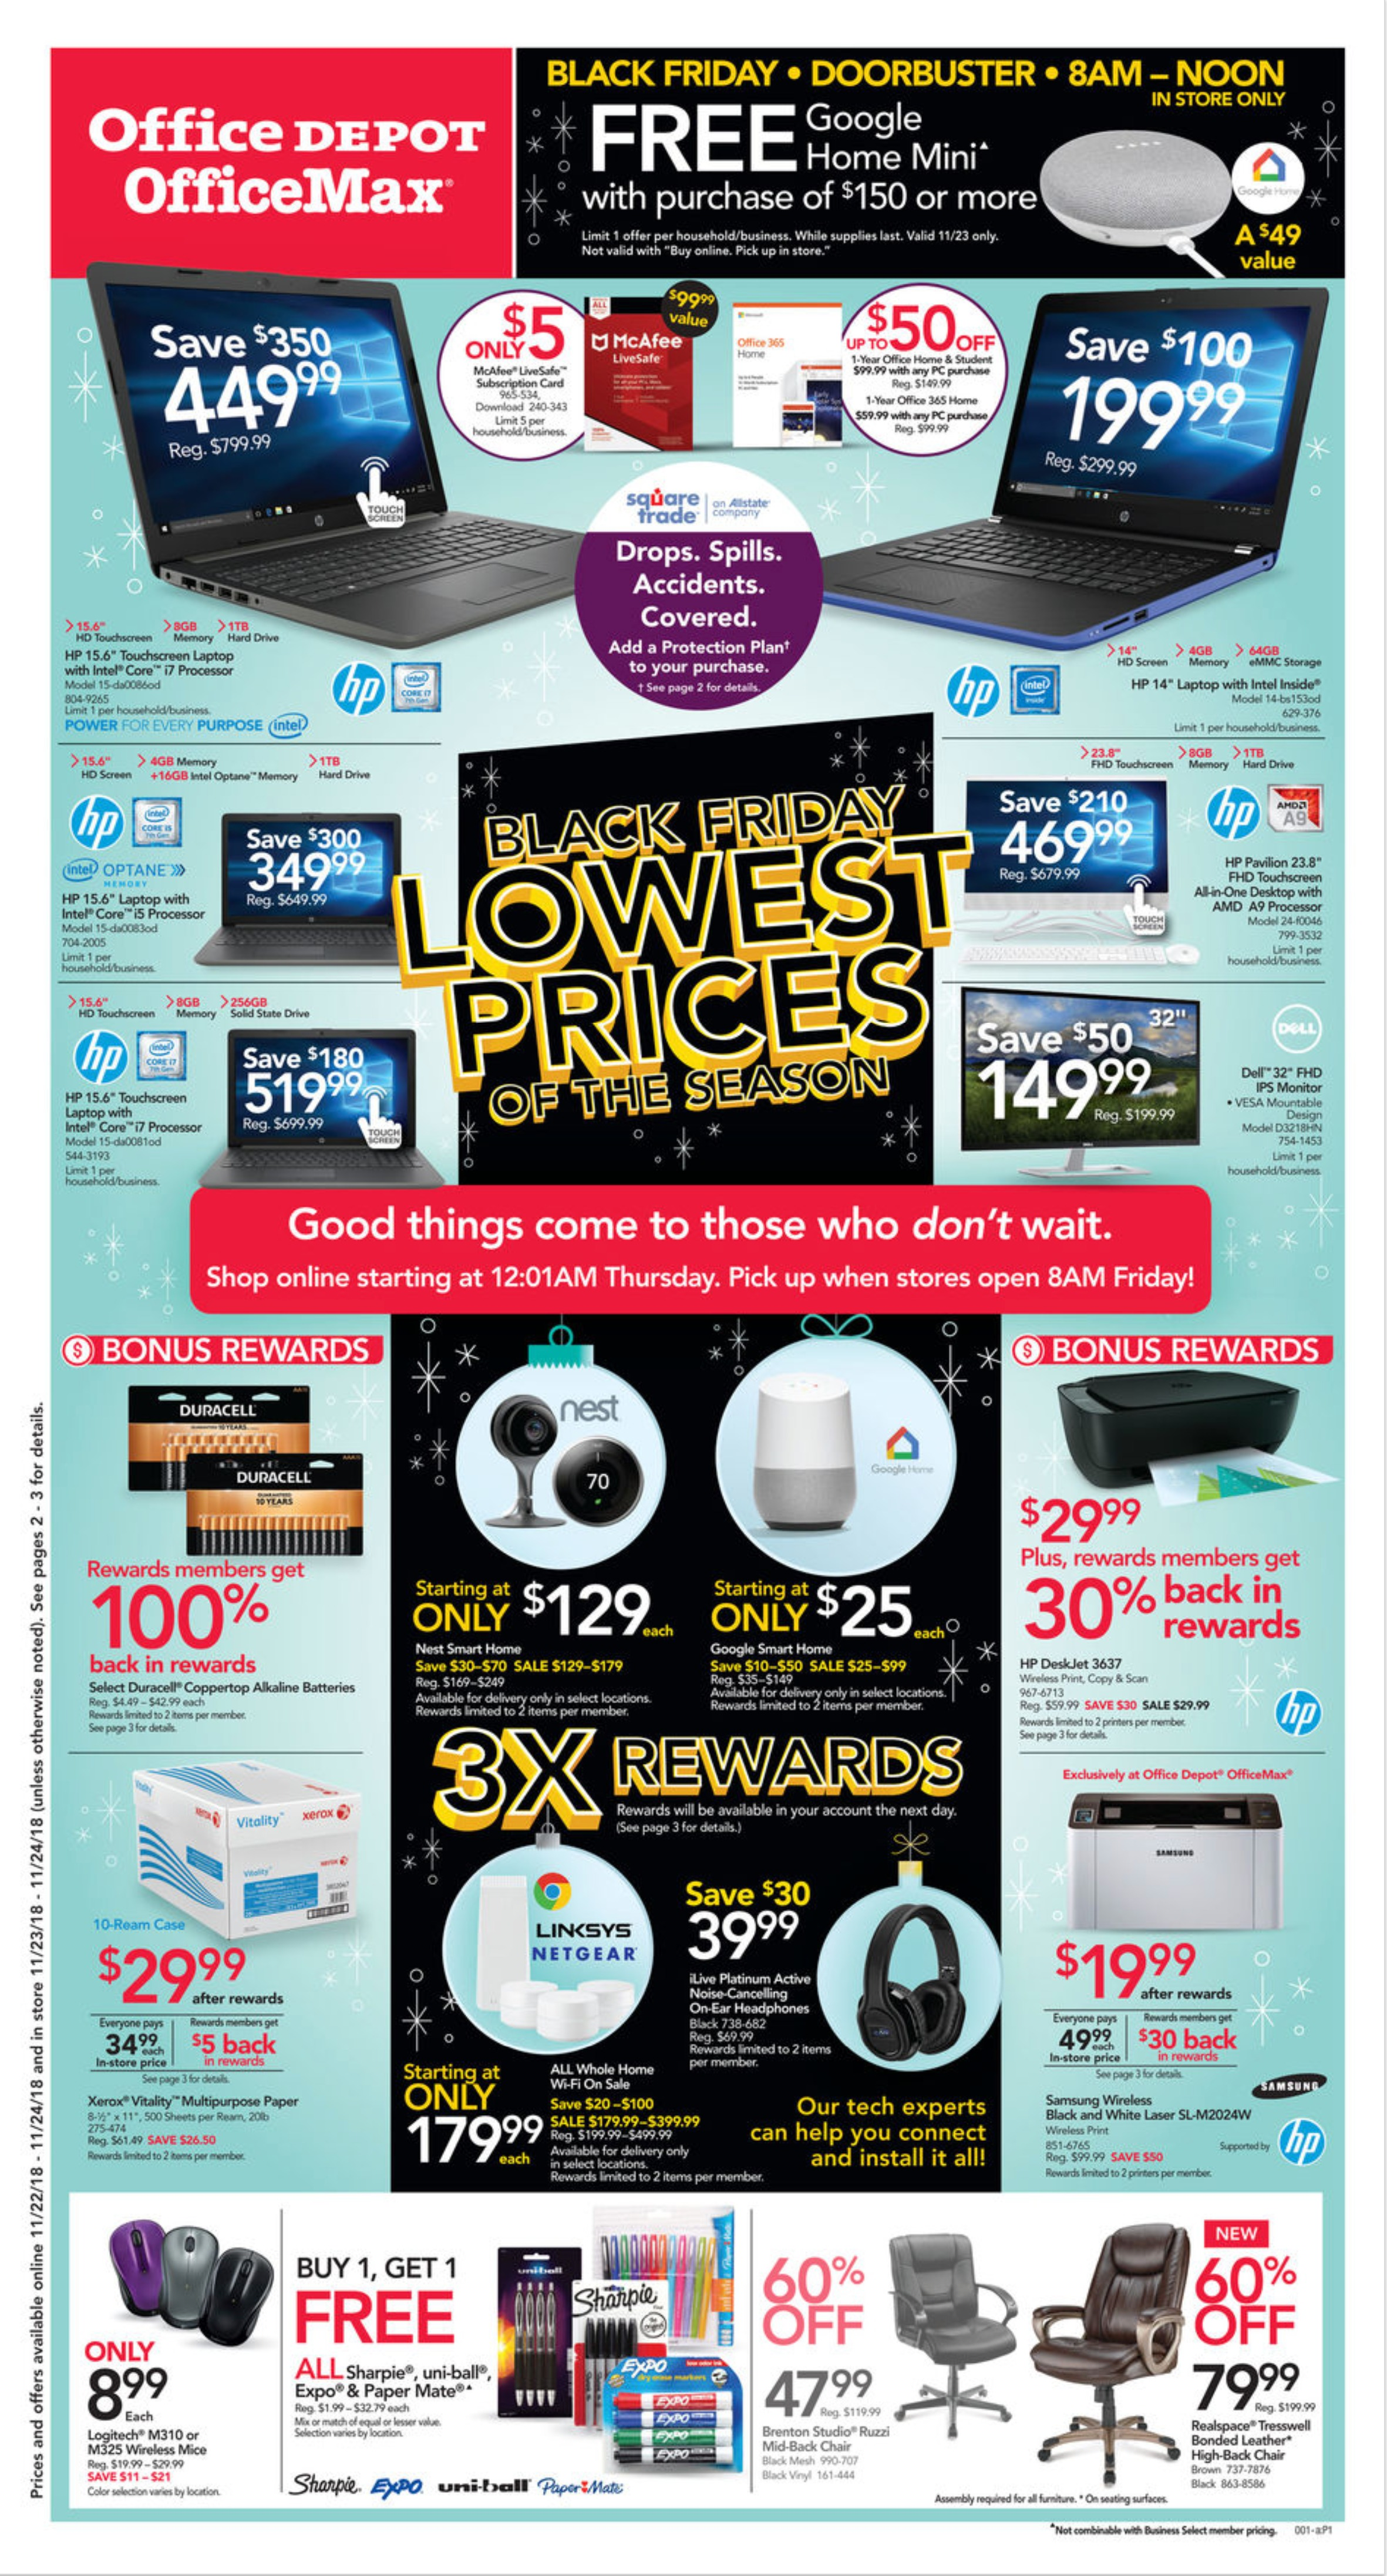 Office Depot OfficeMAX Black Friday Ad 2018 - Page  (1)